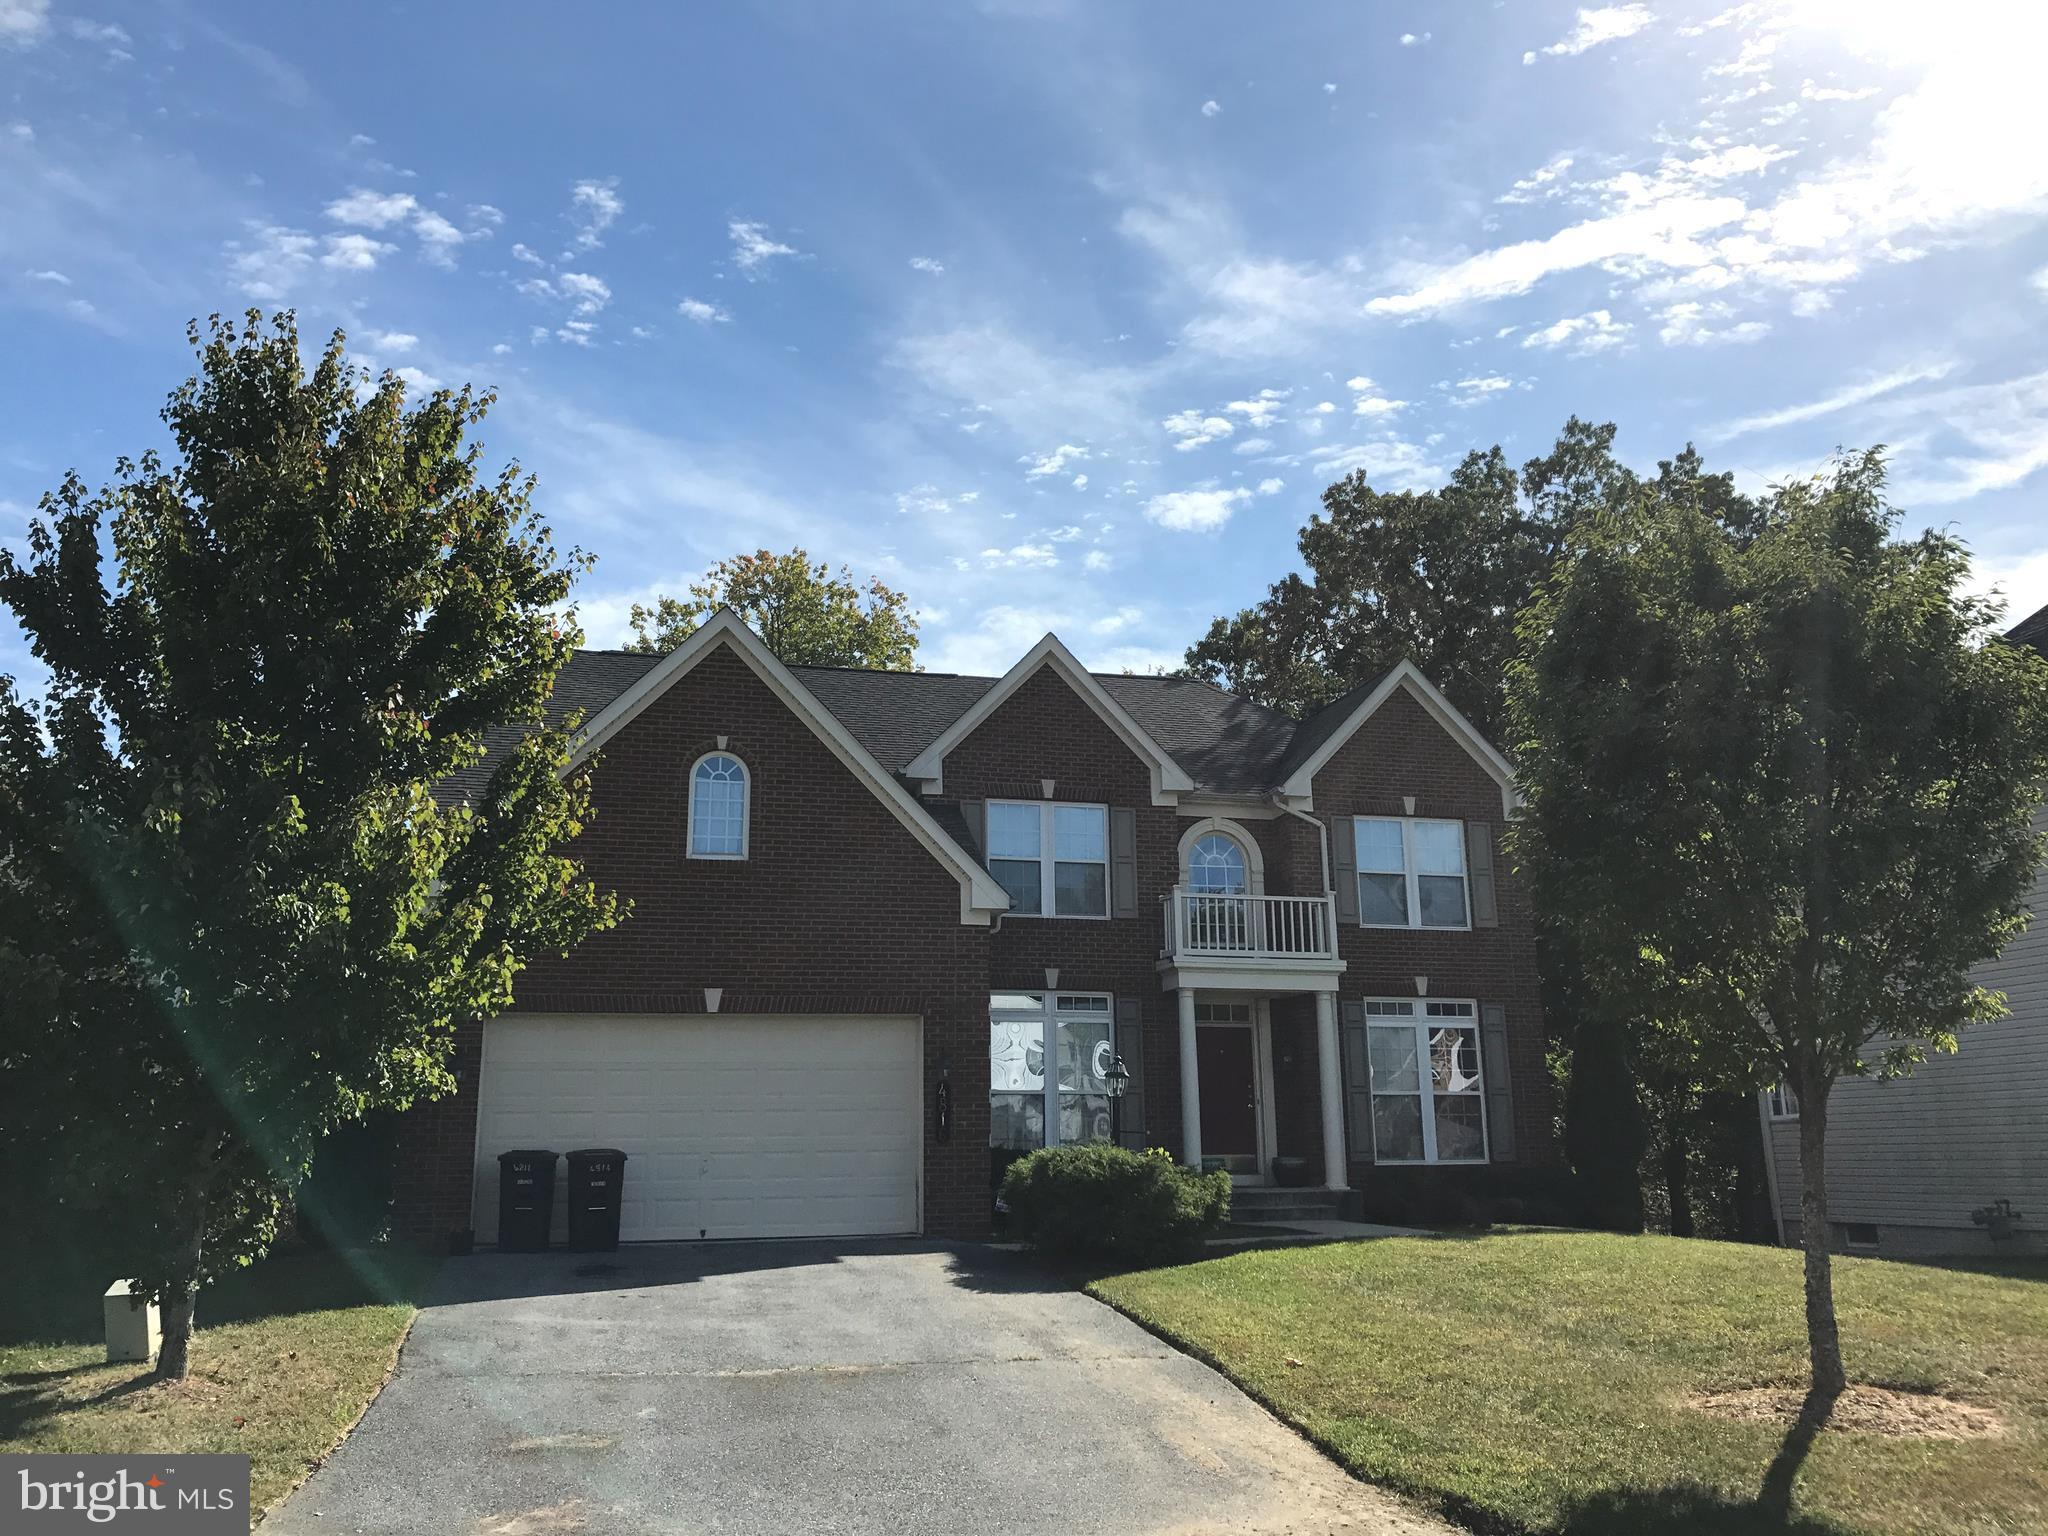 4816 RIVER CREEK TERRACE, BELTSVILLE, MD 20705